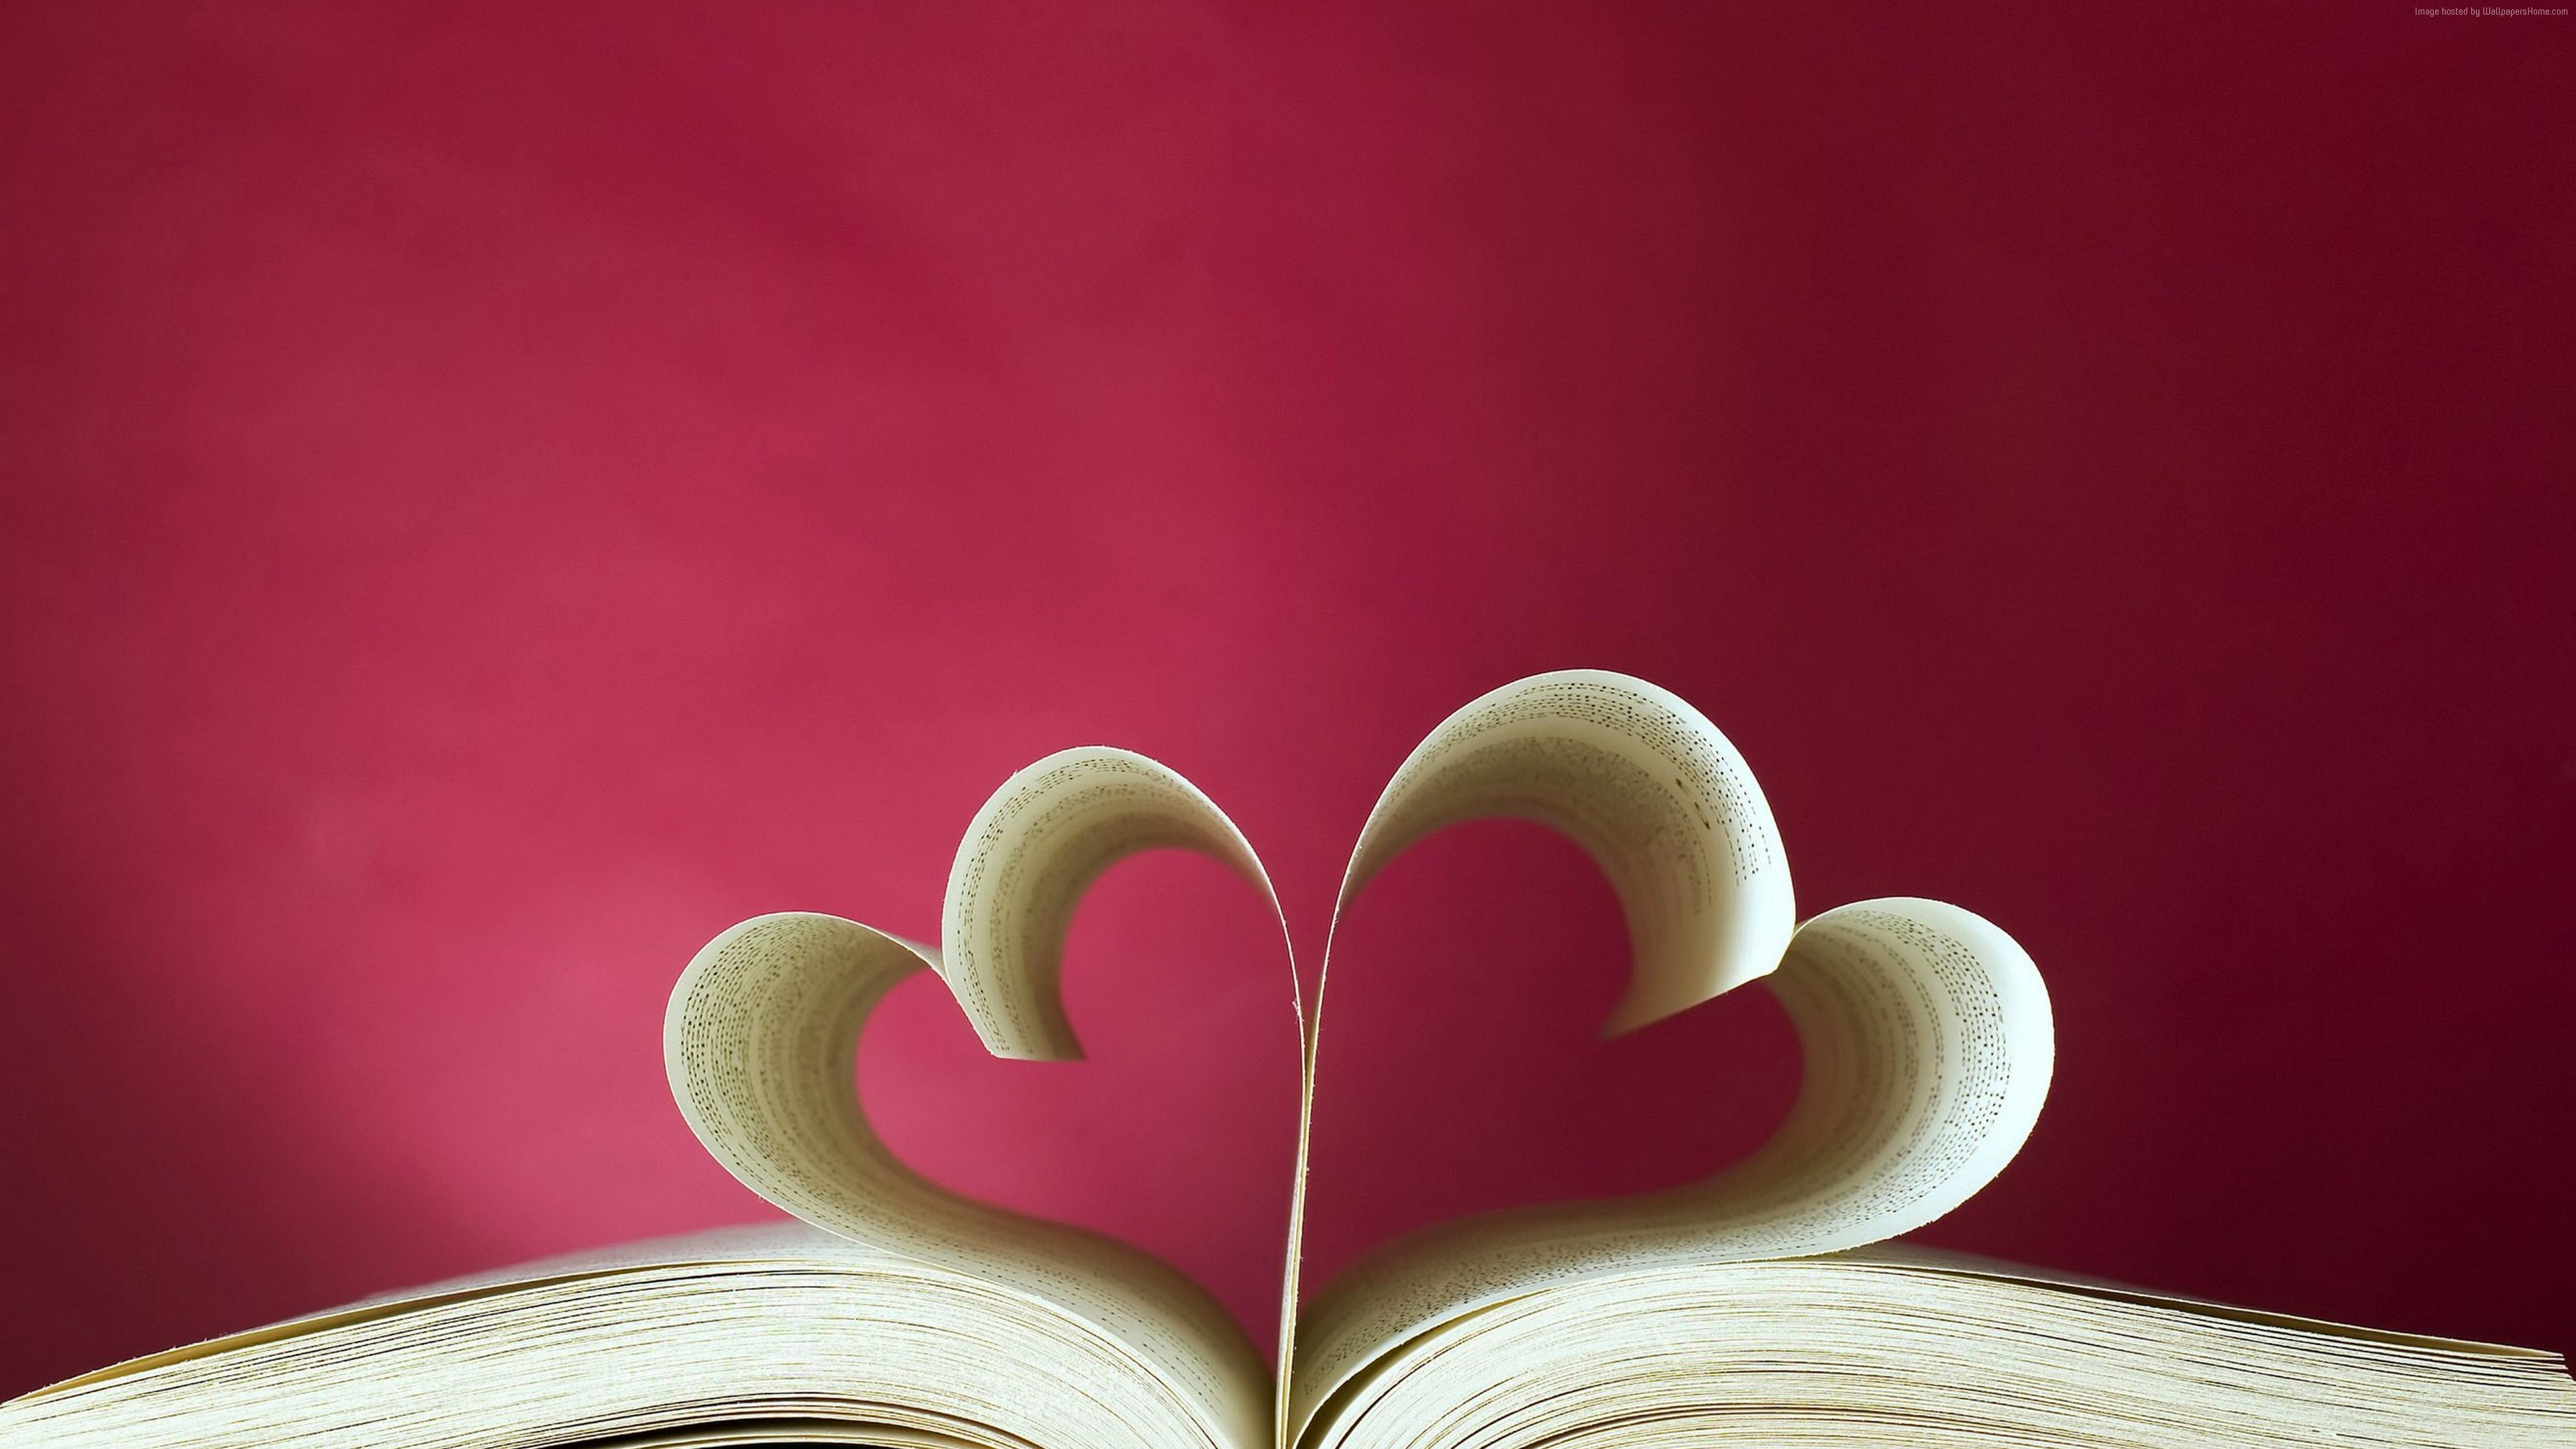 Stock Images love image, heart, book, 5k, Stock Images